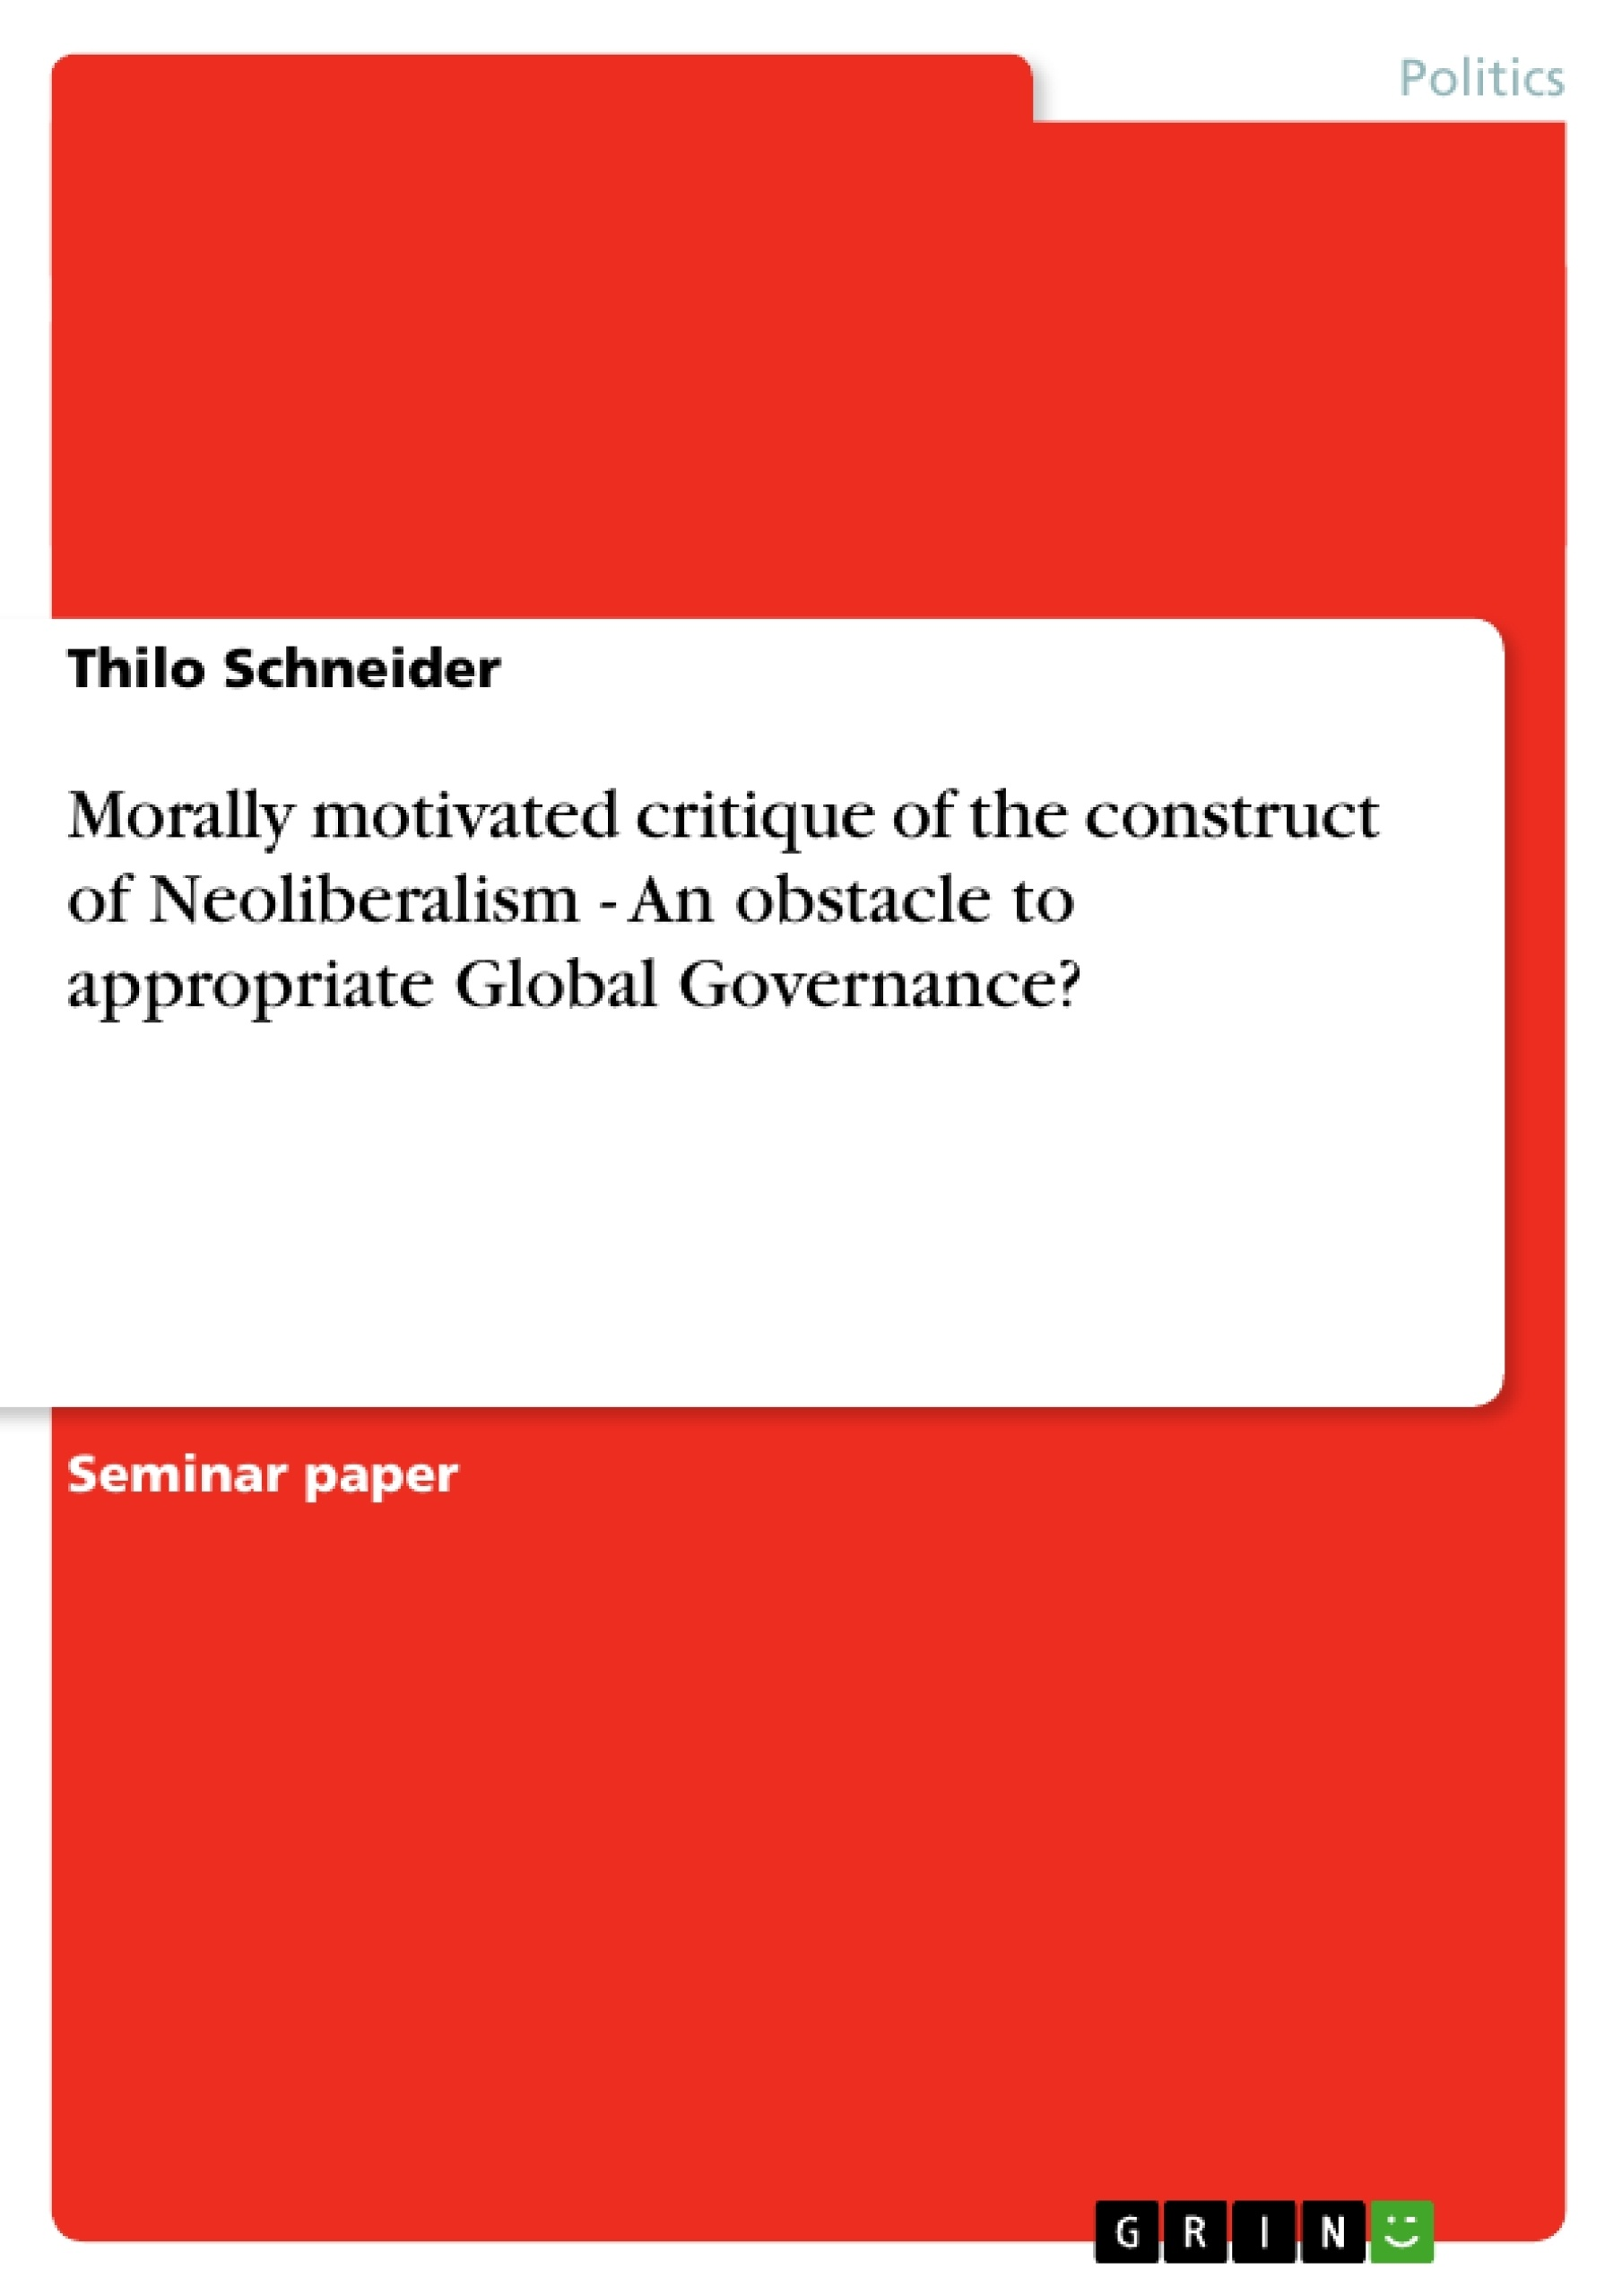 Title: Morally motivated critique of the construct of Neoliberalism - An obstacle to appropriate Global Governance?